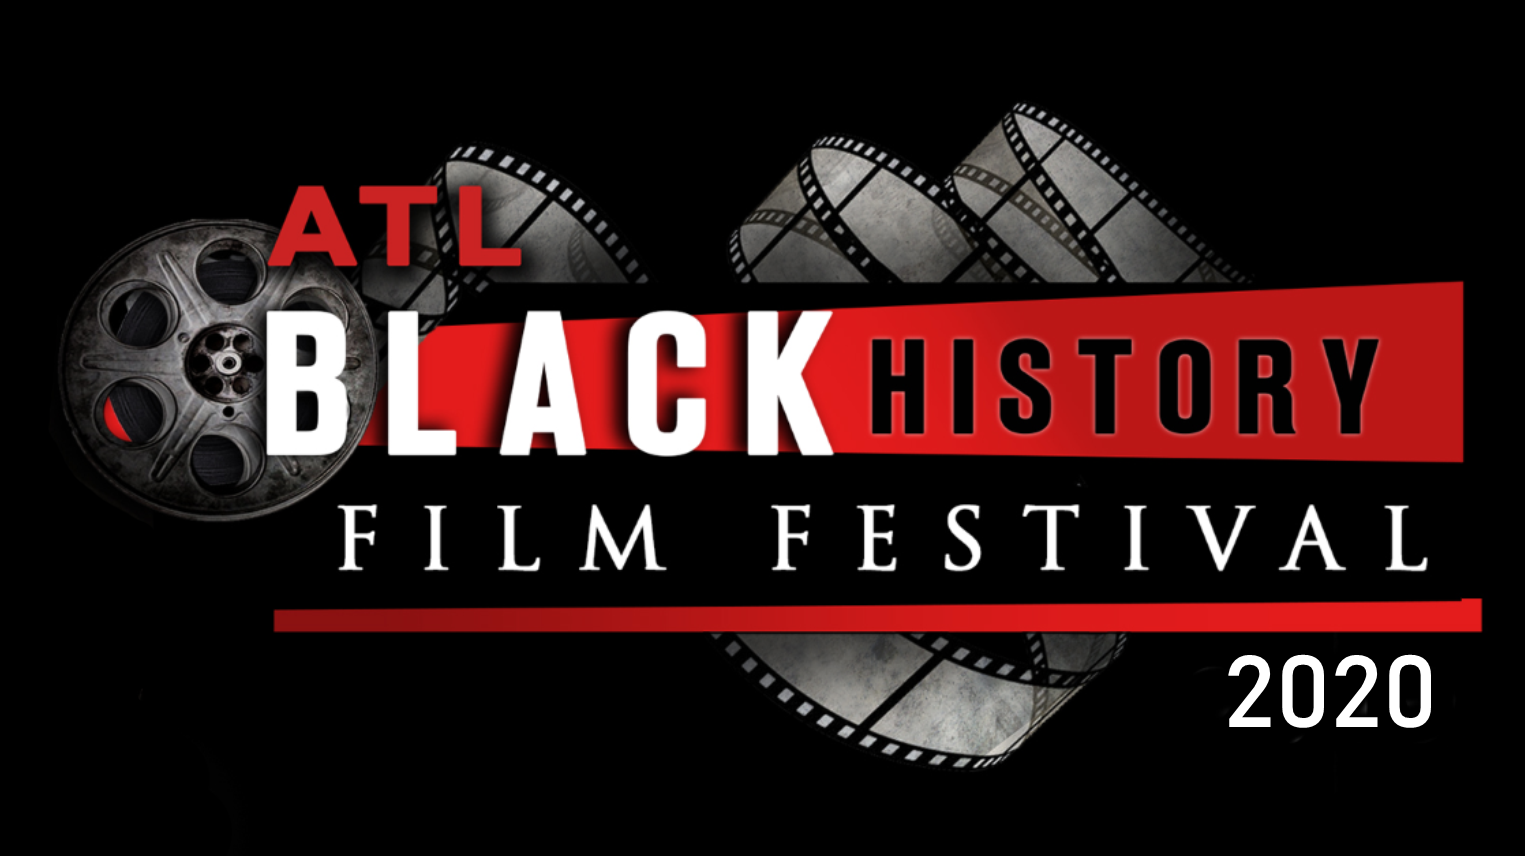 Black History Film Festival with film reel